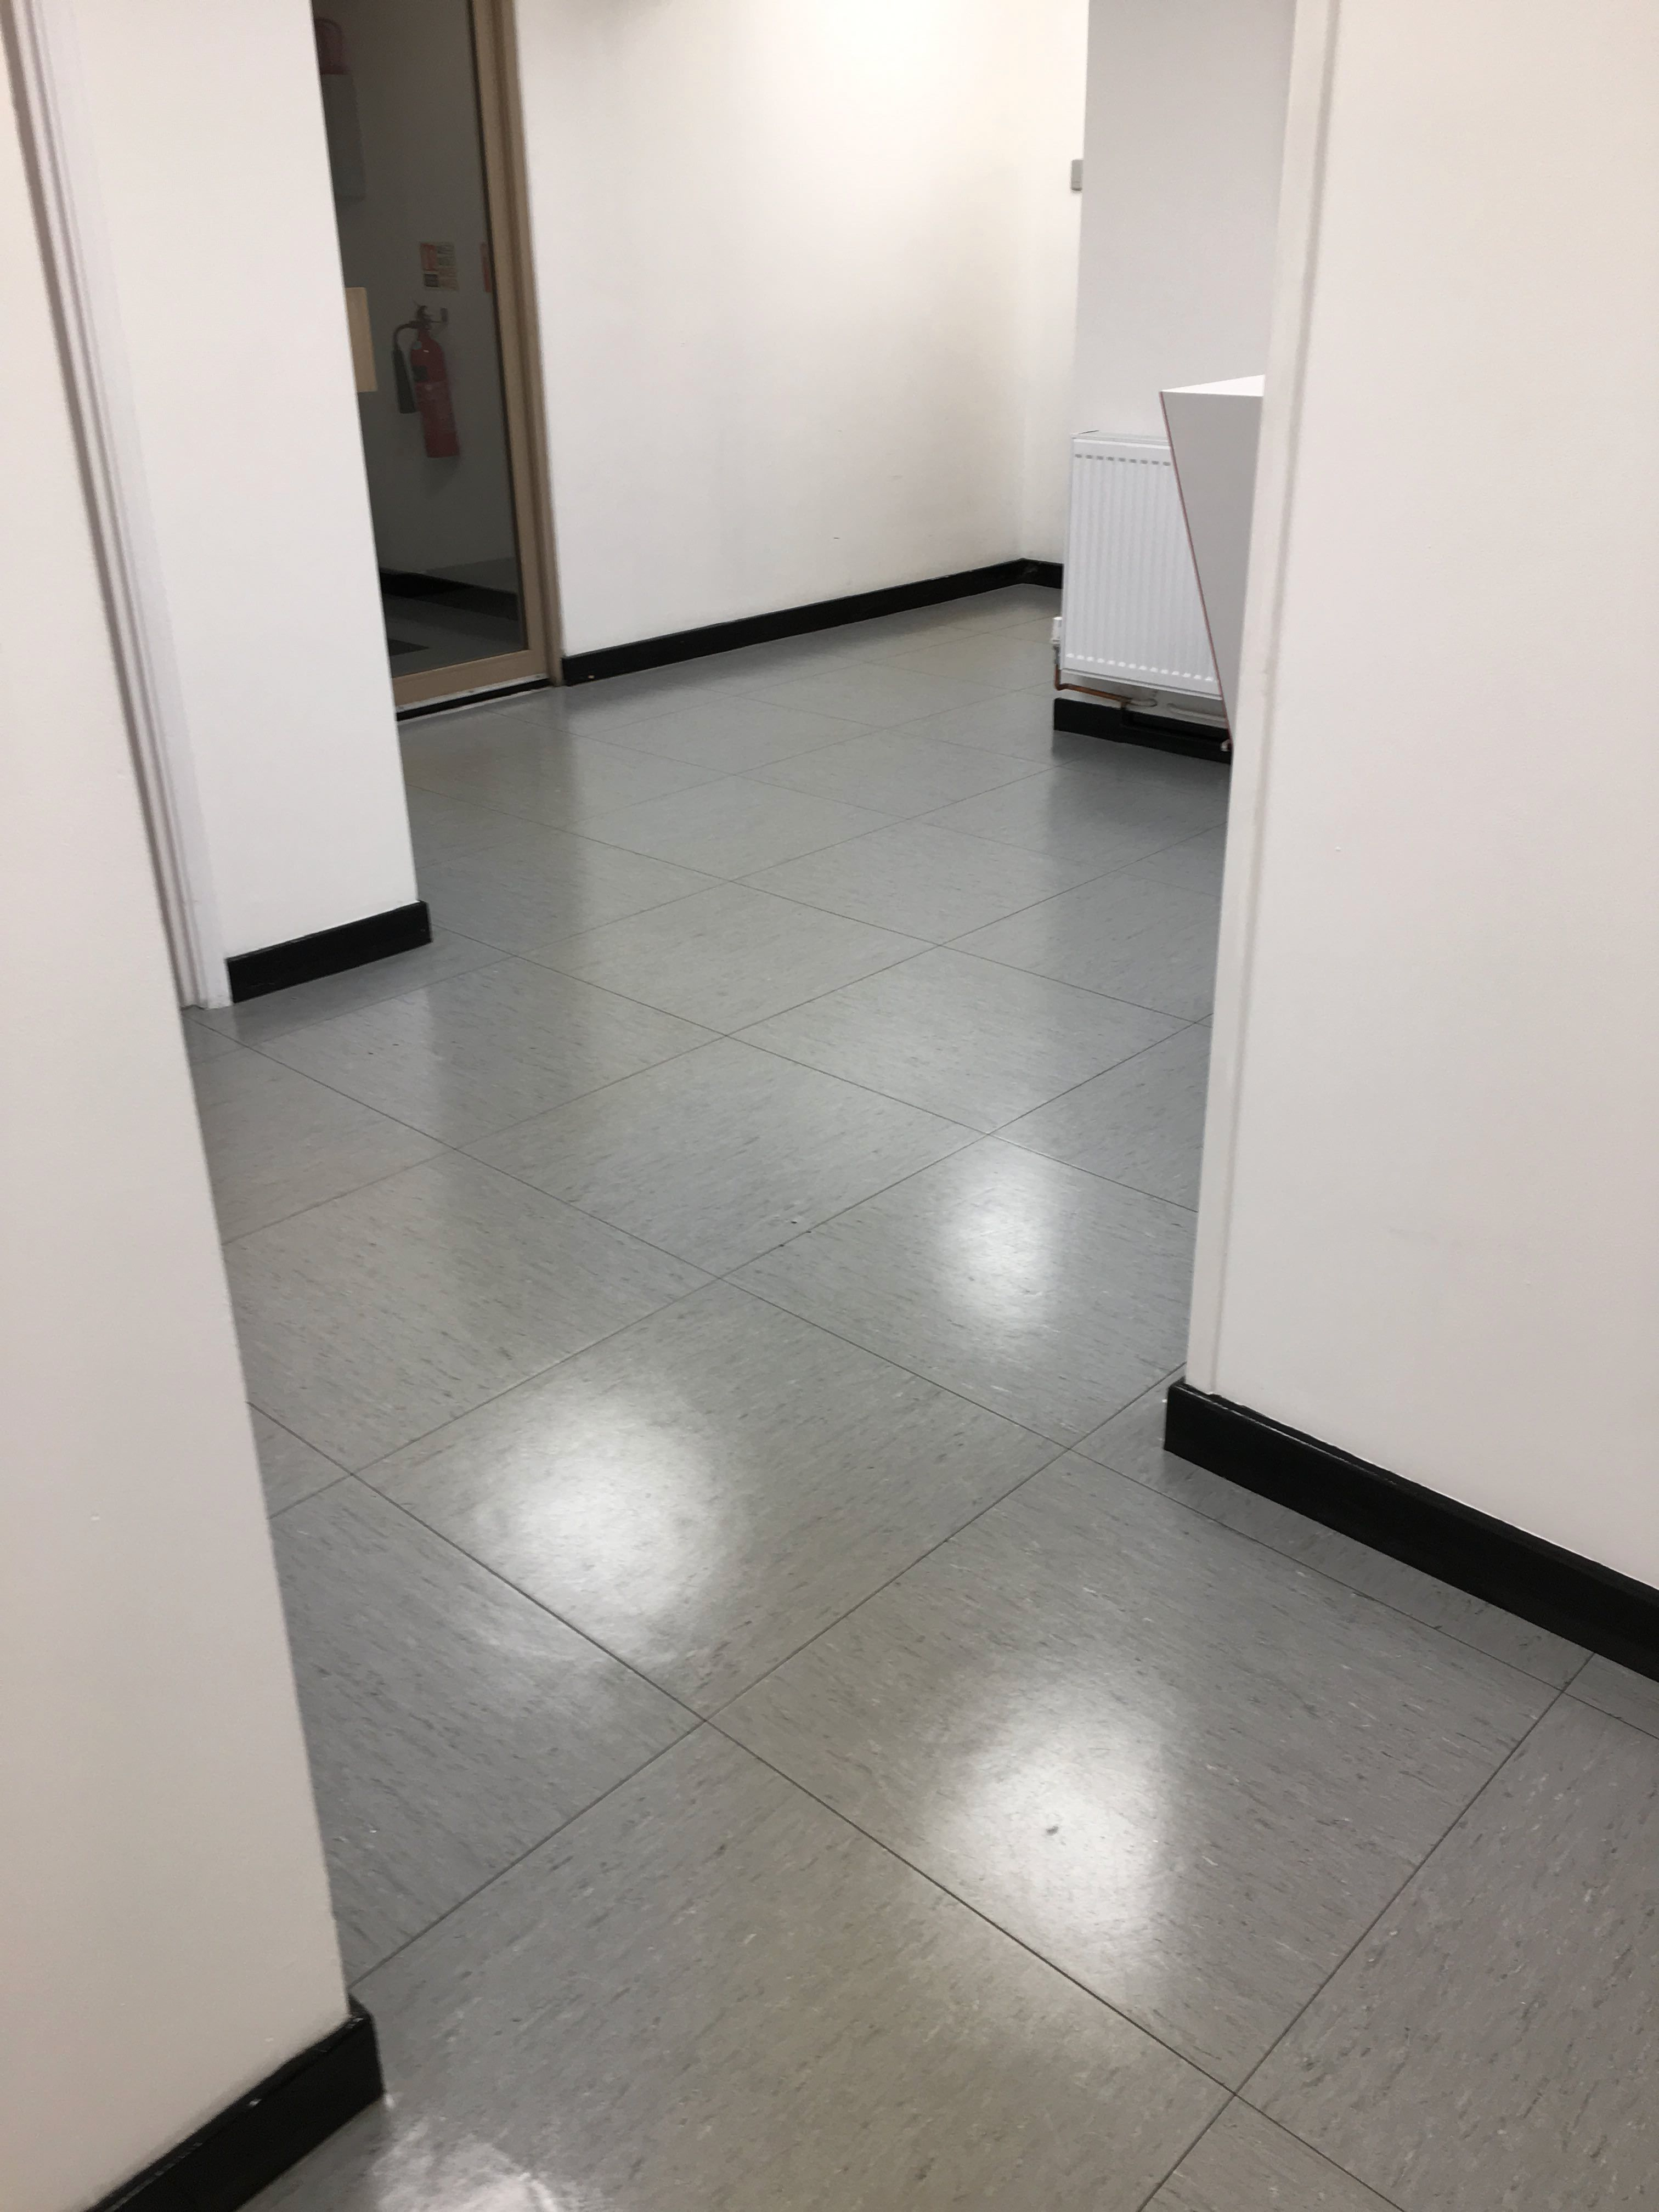 Vinyl Floor Deep Cleaning Stripping And Sealing Esher Surrey